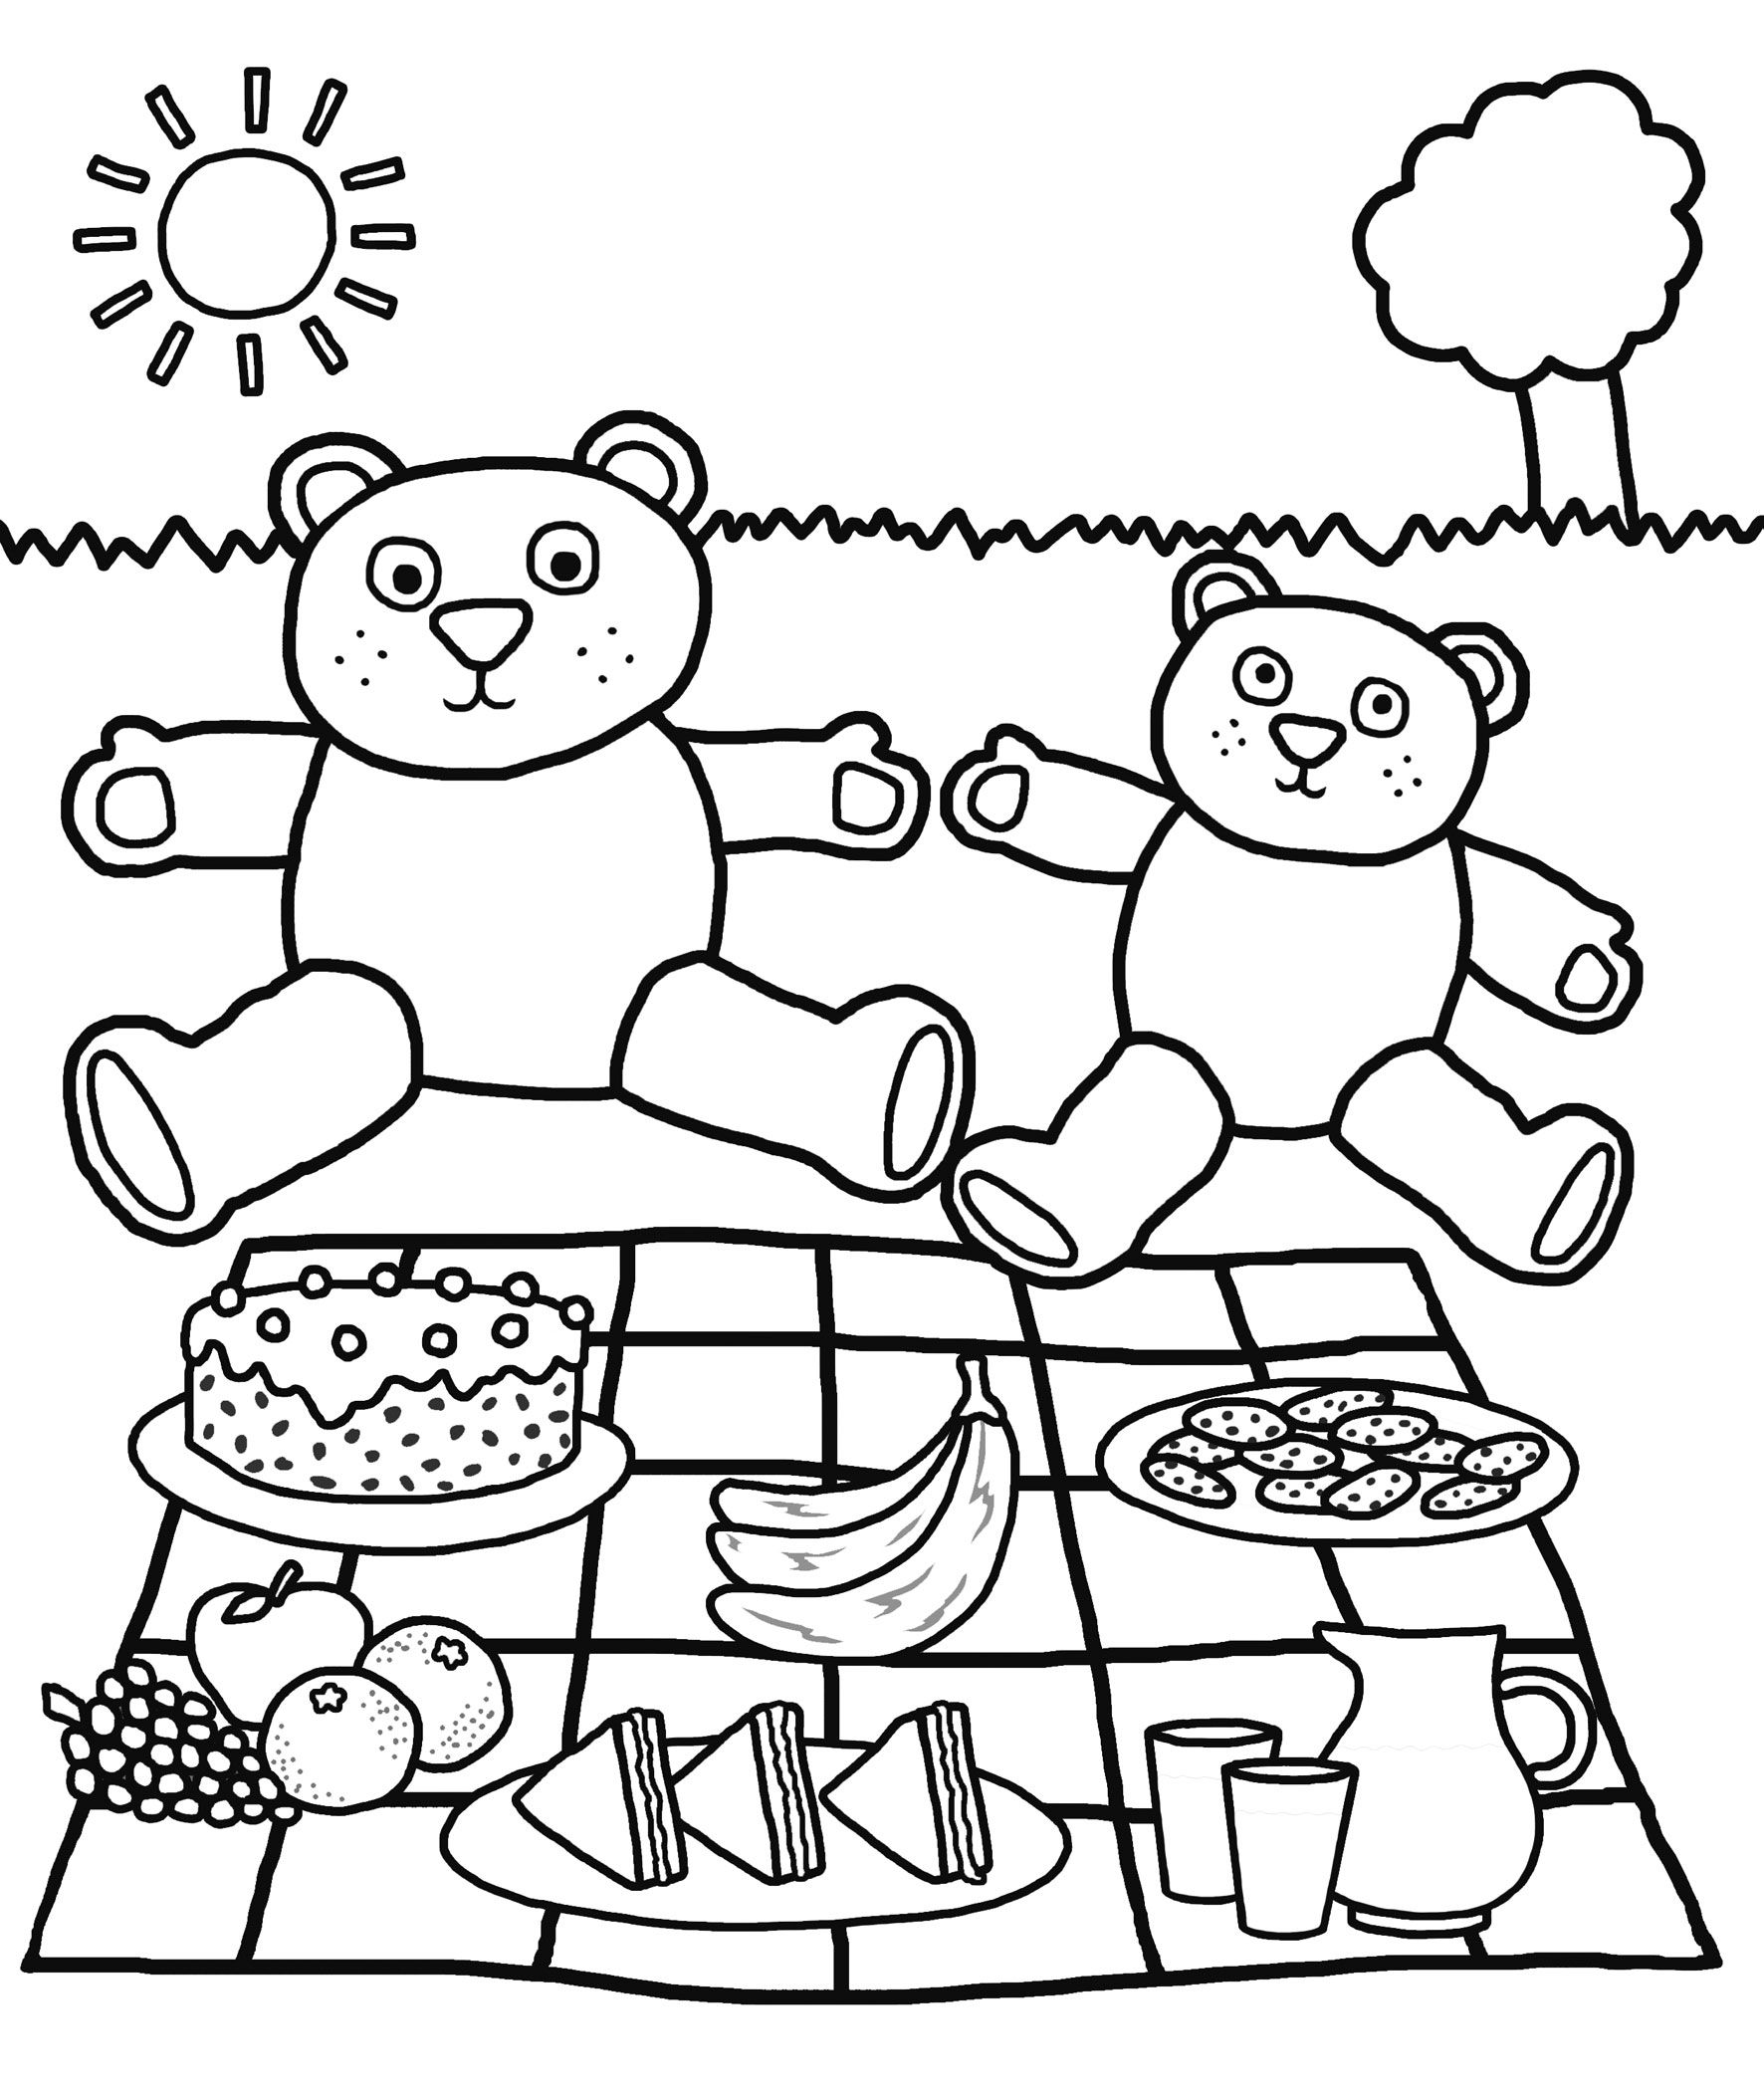 Spring coloring sheets for toddlers - Teddy Bear Coloring Pages For Toddlers Gtm Ccamish